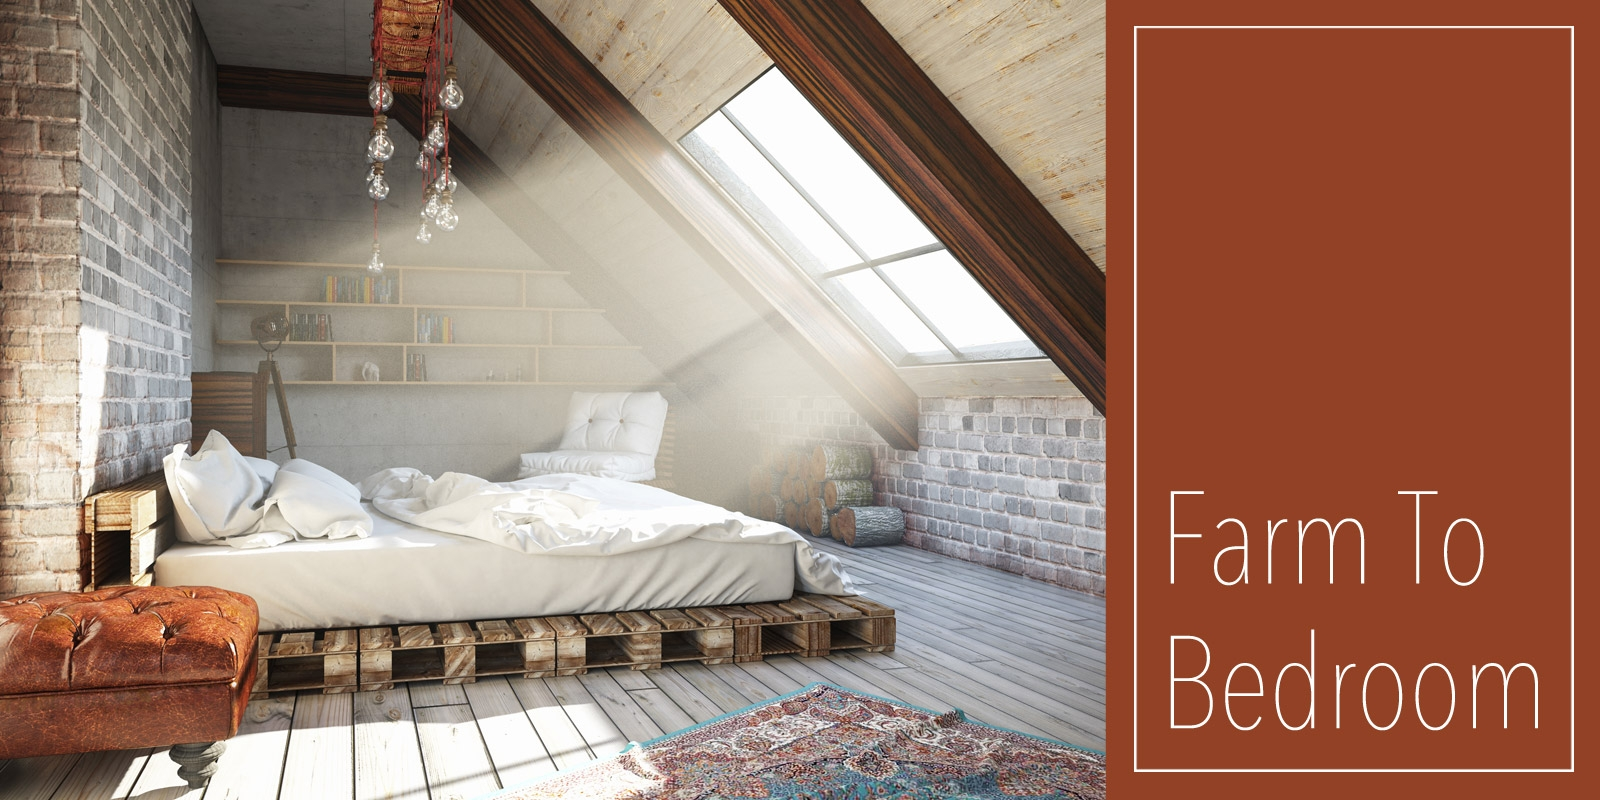 Blog Farm To Bedroom Organic Mattress Movement